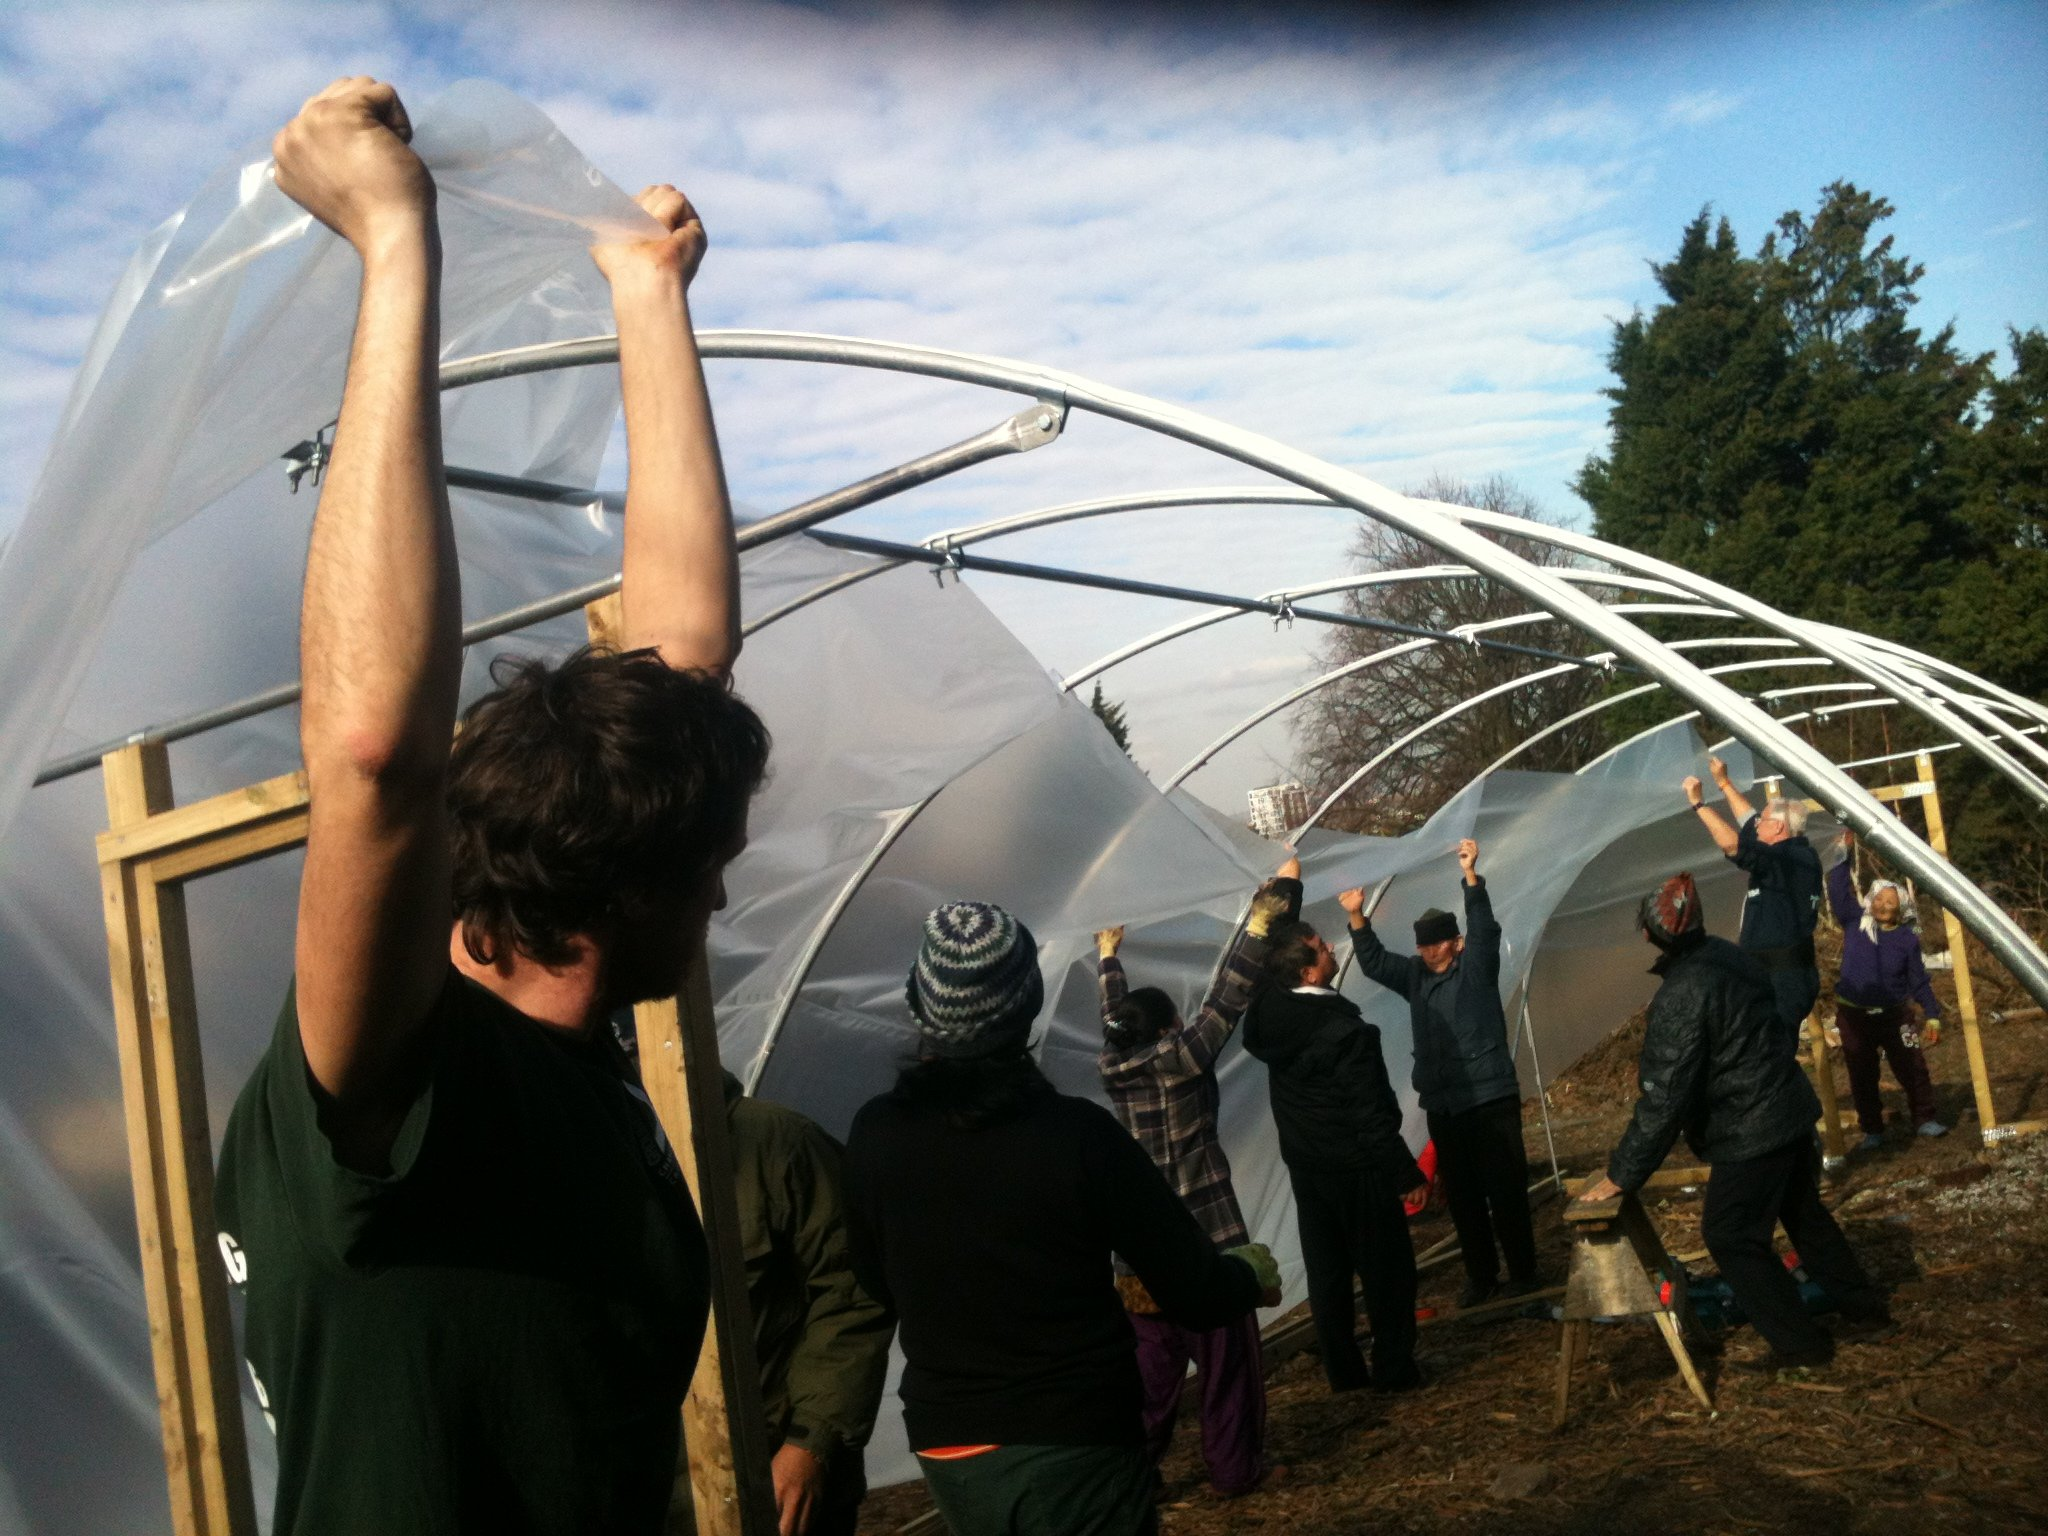 Putting up a polytunnel on one of our previous projects